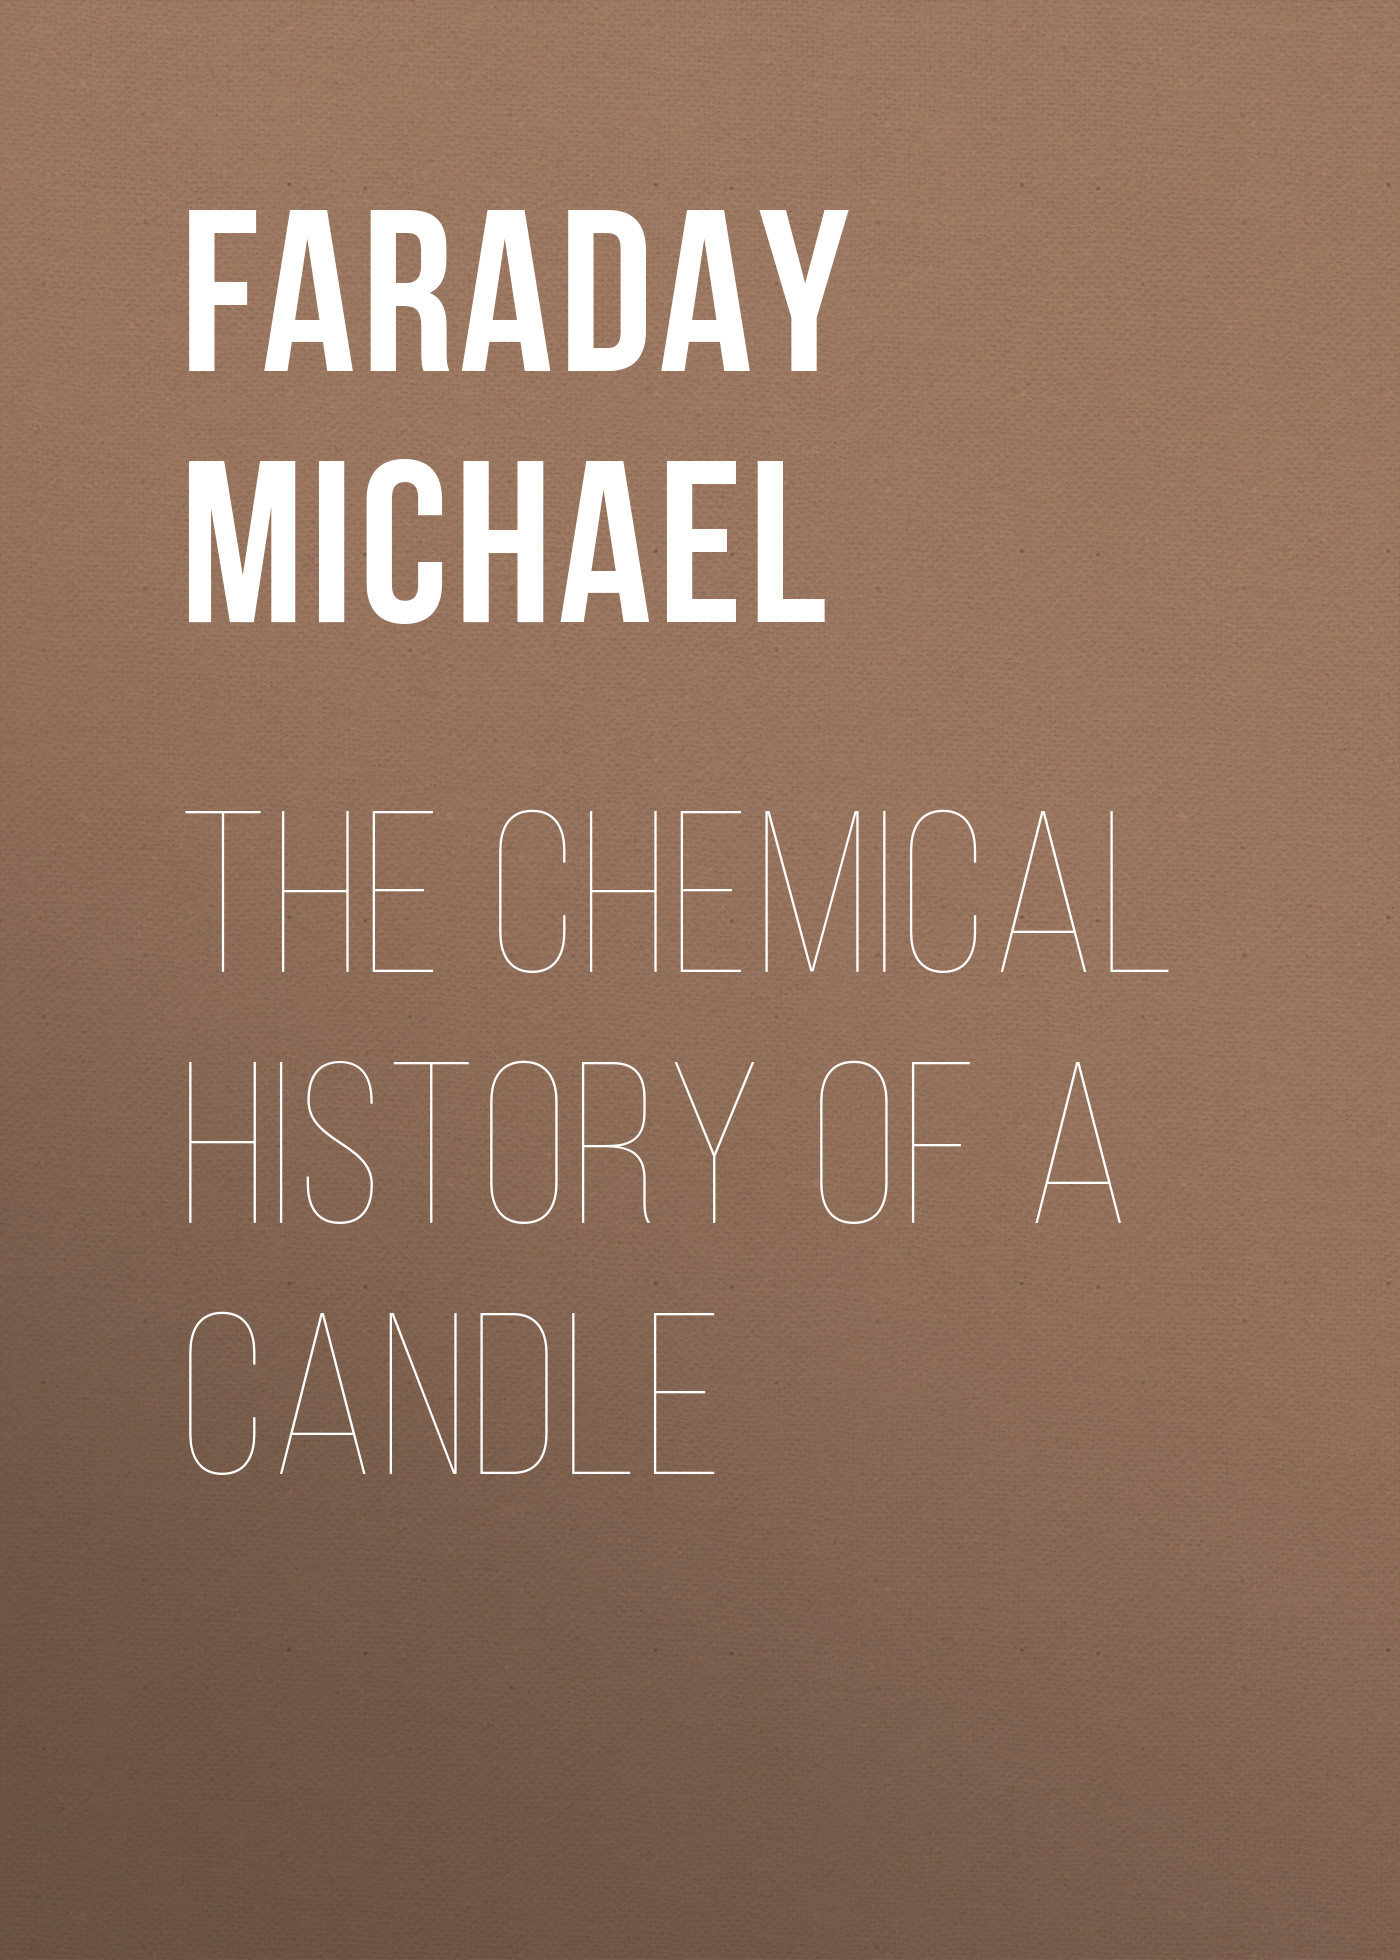 Faraday Michael The Chemical History of a Candle